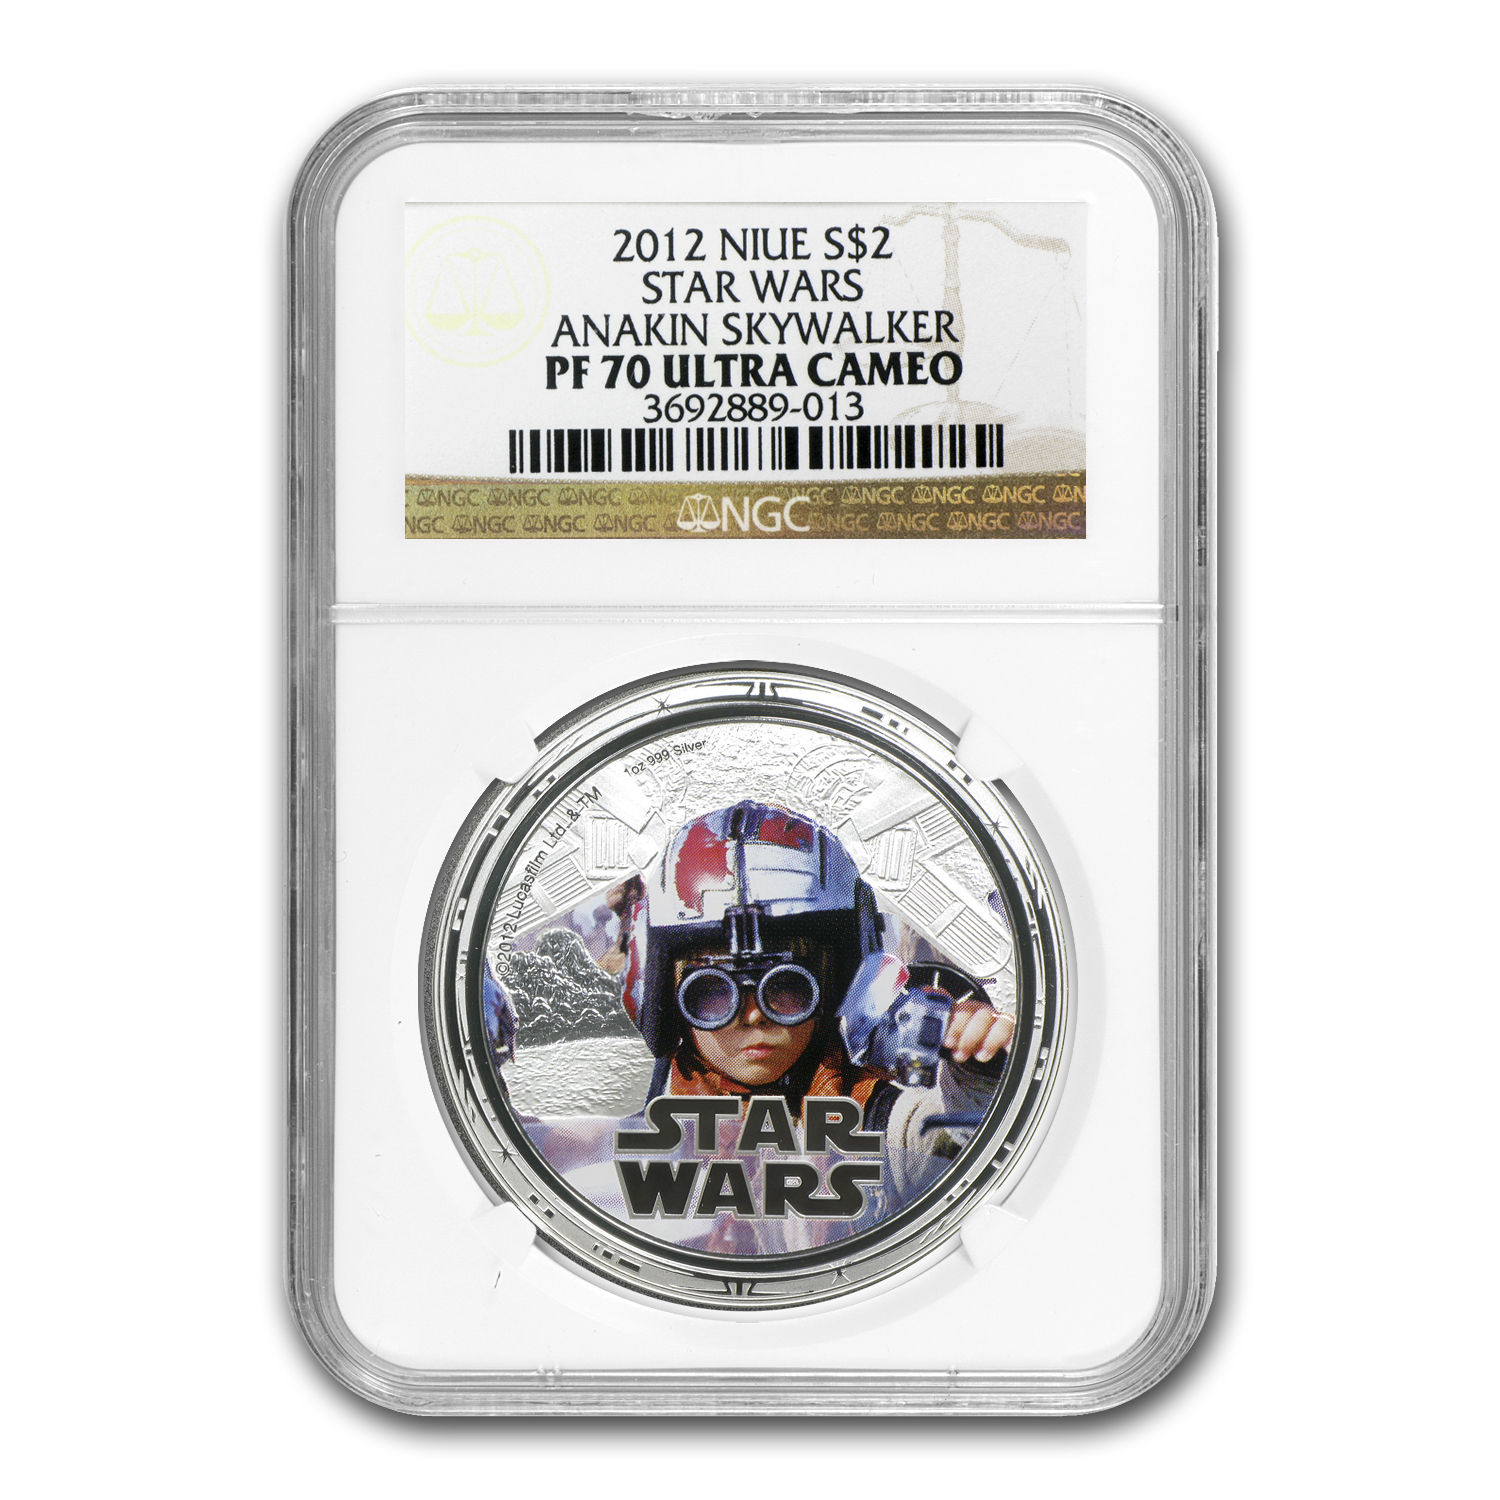 2012 Niue 1 oz Silver $2 Star Wars Anakin Skywalker PF-70 NGC